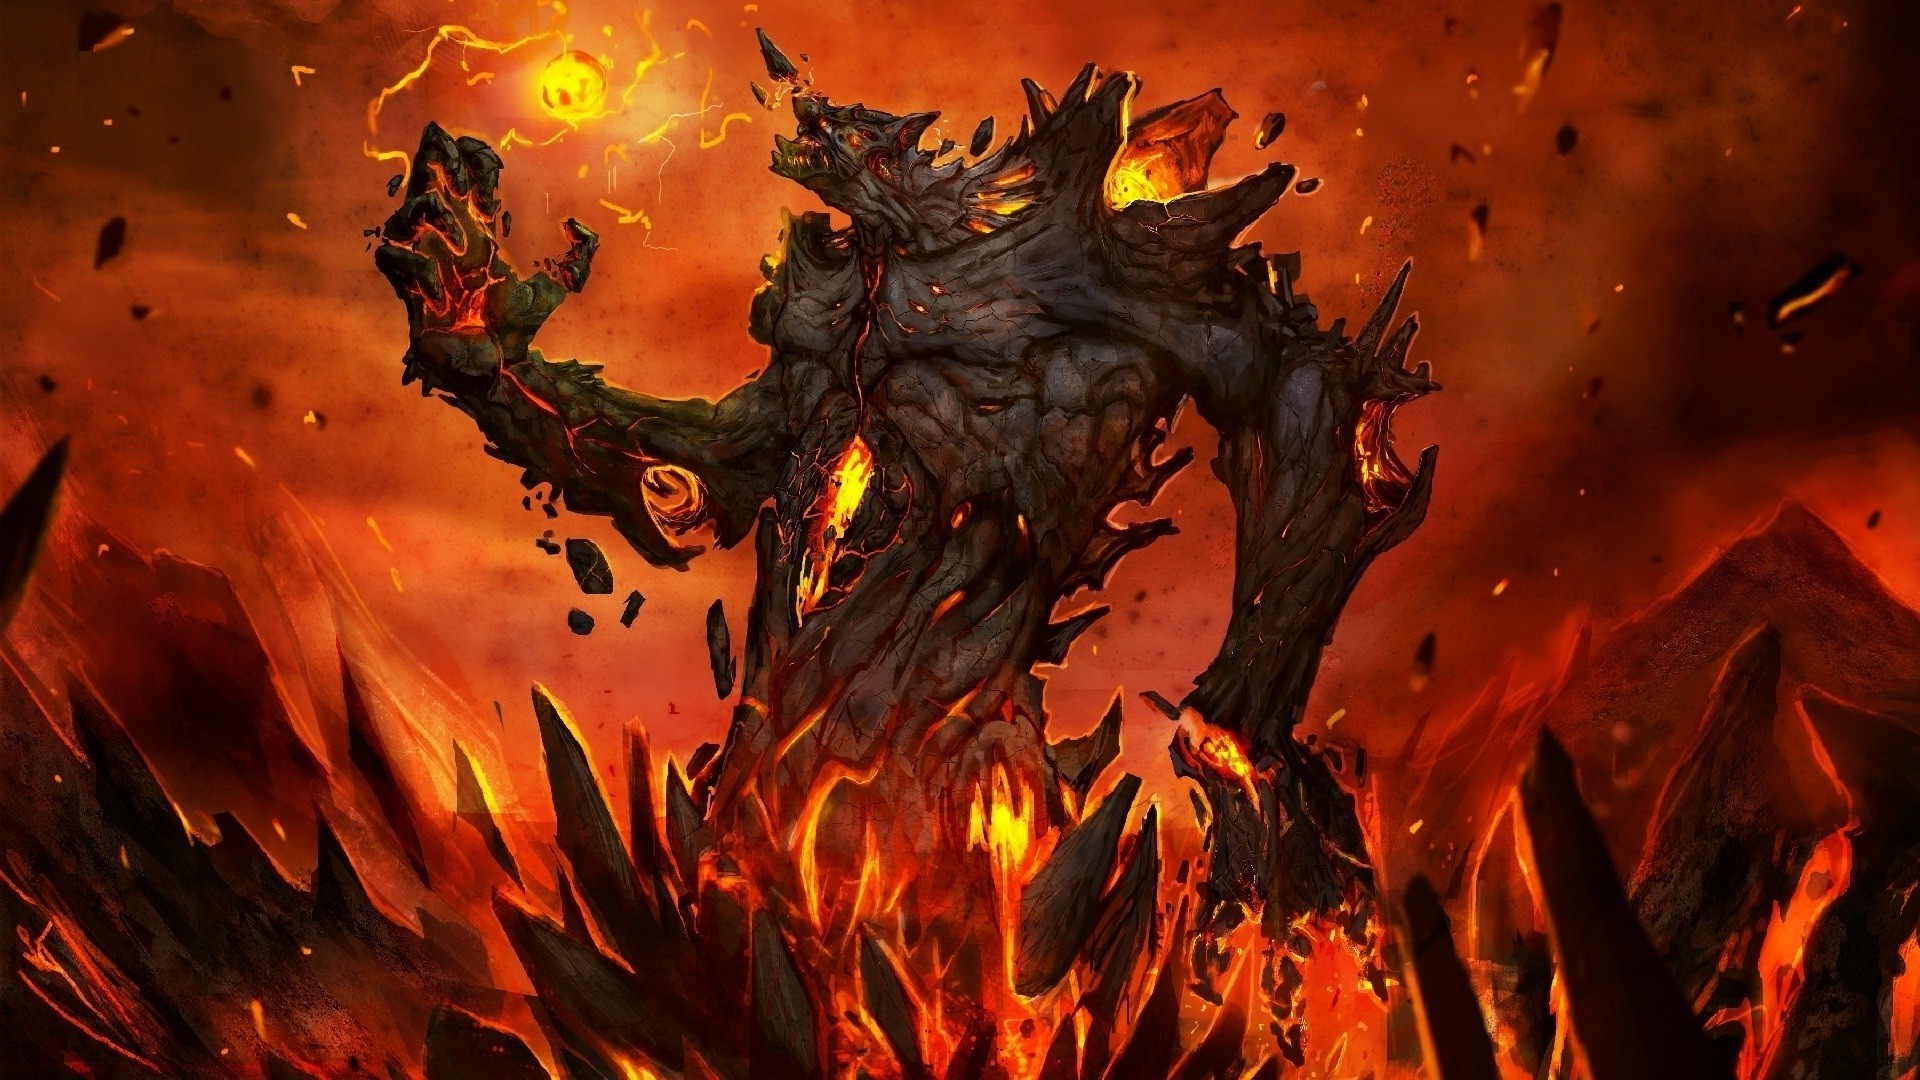 Download Fantasy Lava HD Wallpapers for Free, RyylxJW